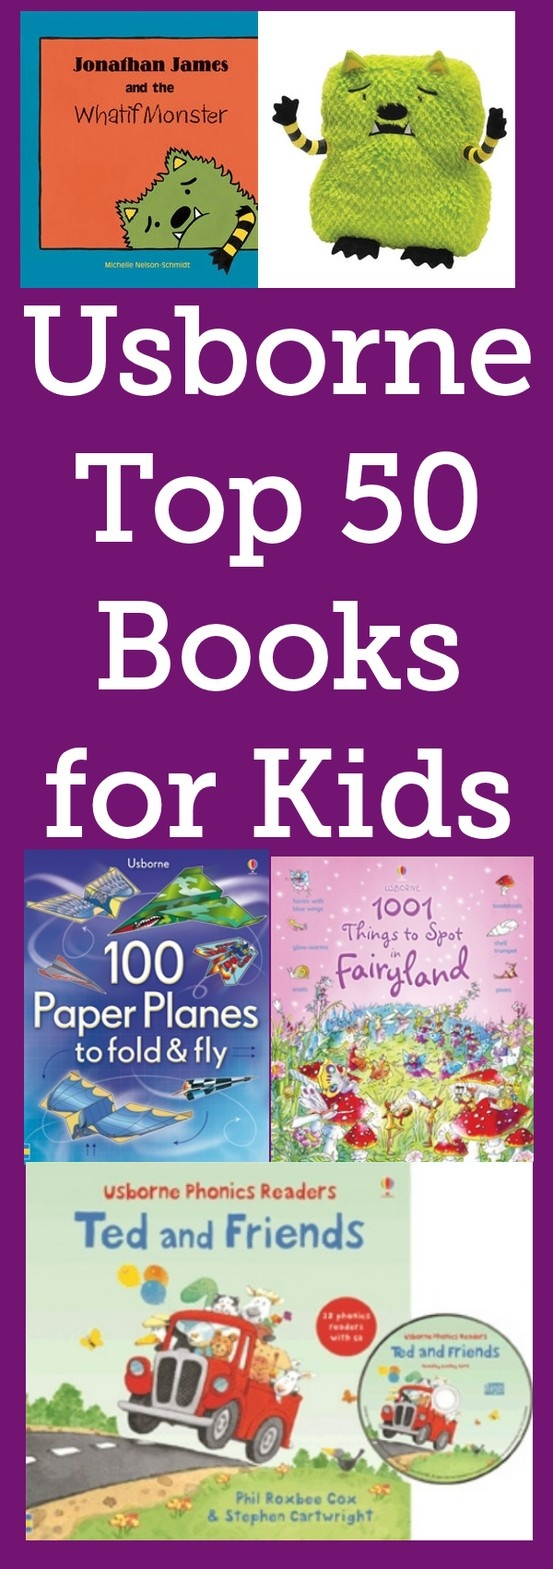 fun books for kids from activity books to lift the flap board books to chapter books and more